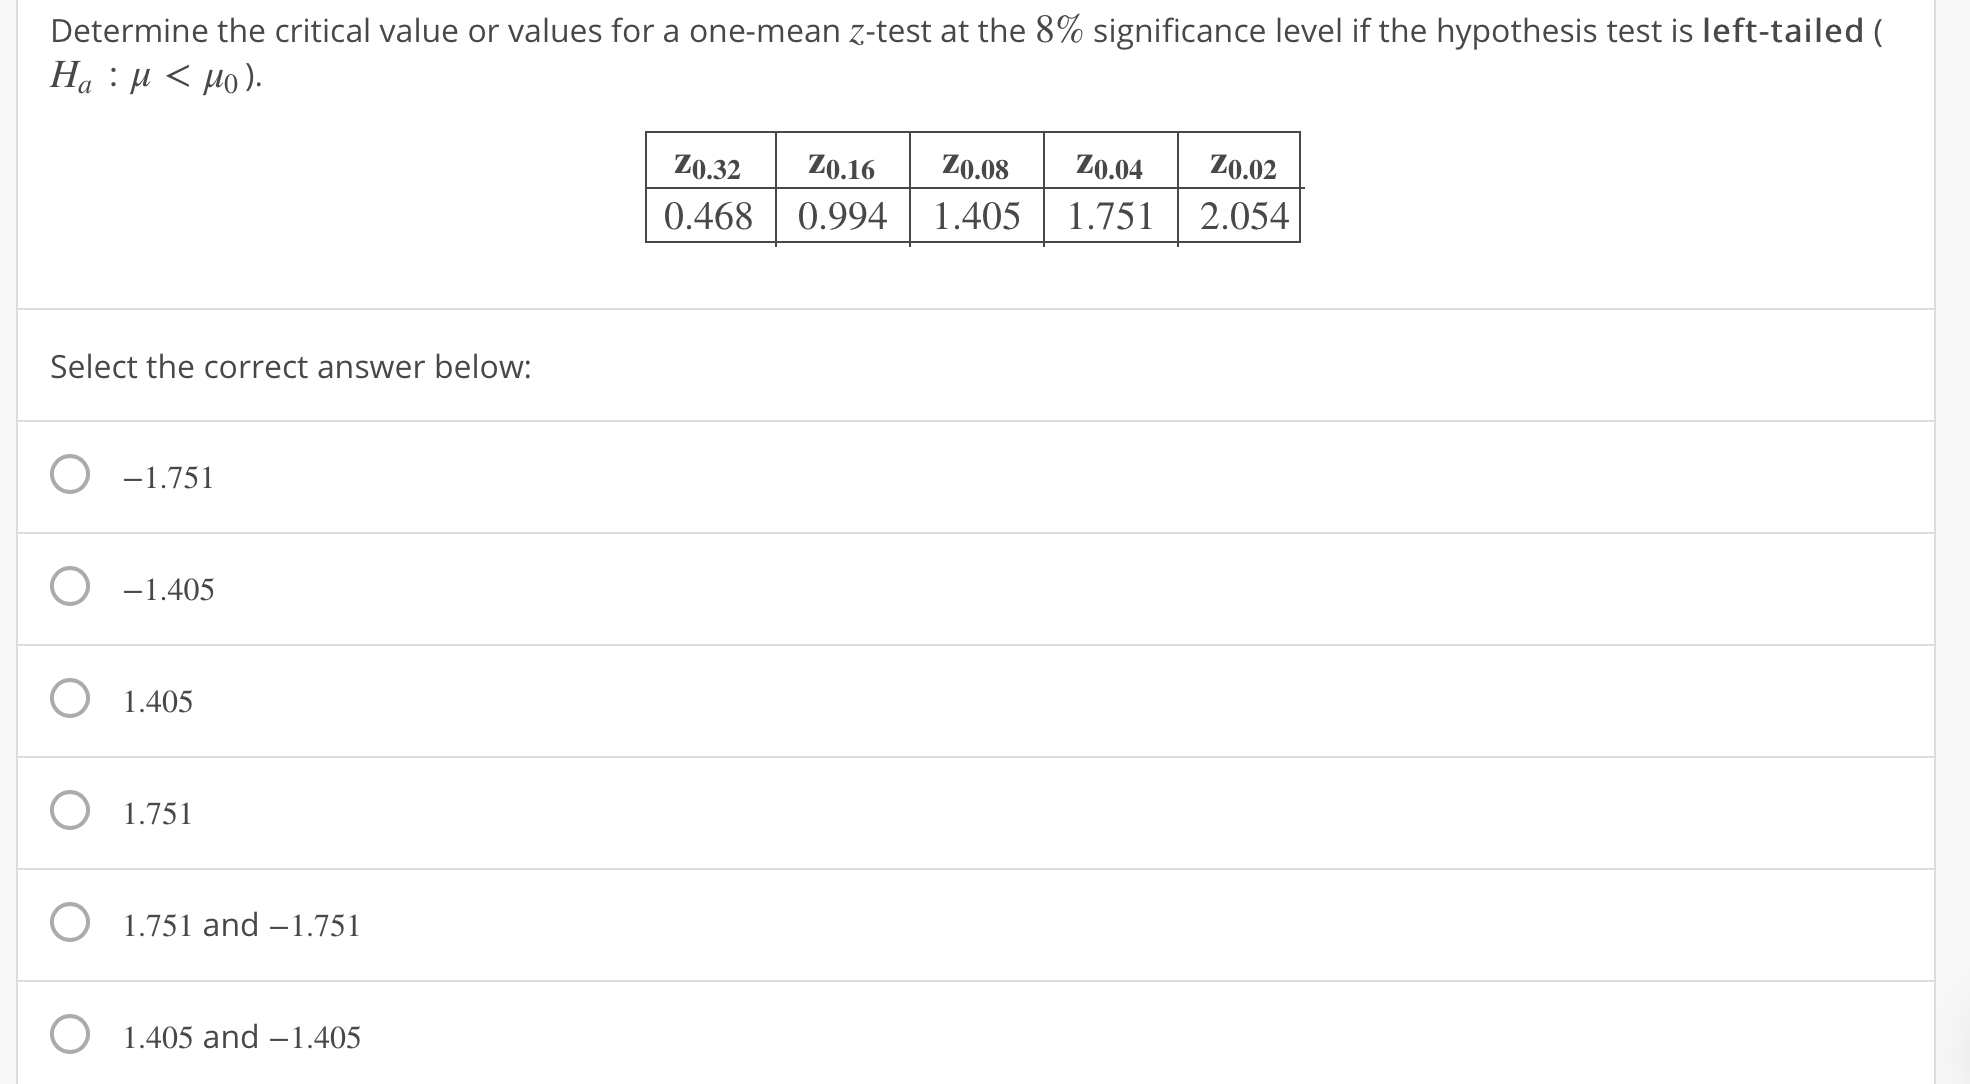 Determine the critical value or values for a one-mean z-test at the 8% significance level if the hypothesis test is left-tailed ( 0.32 0.16 .8 0.040.02 0.468 0.994| 1.405 1.7512.054 Select the correct answer below: O-1.751 O -1.405 O 1.405 O1.751 O 1.751 and -1.751 O 1.405 and -1.405